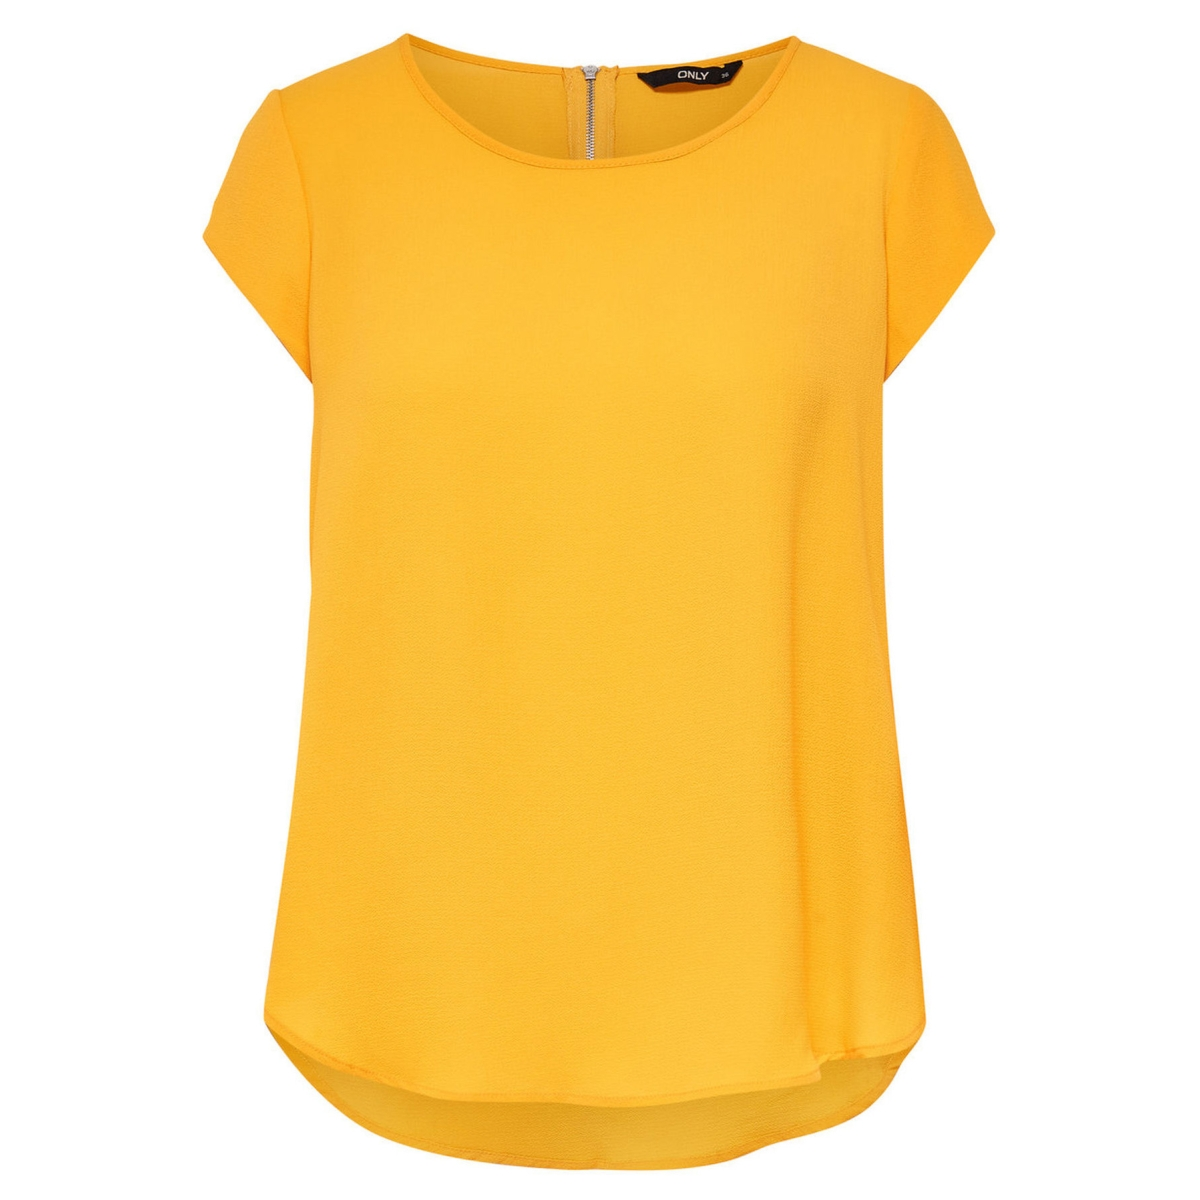 onlvic s/s solid top noos wvn 15142784 only t-shirt yolk yellow